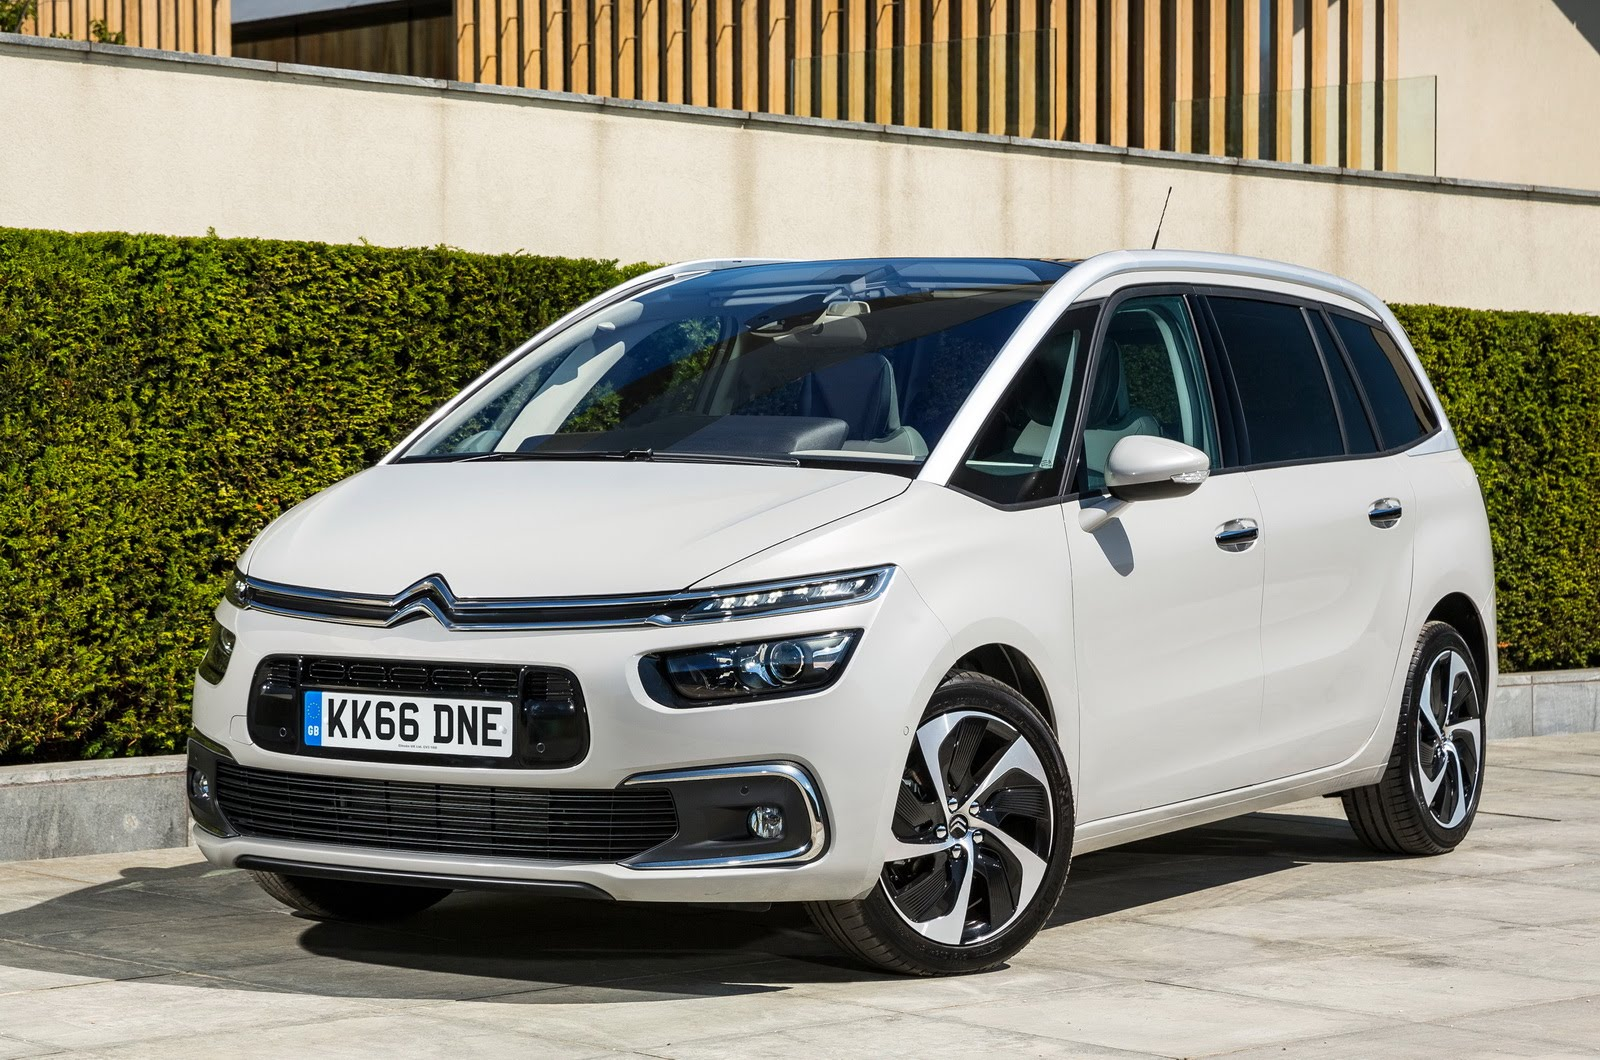 Citroen C4 Picasso II Restyling 2016 - now Compact MPV #3